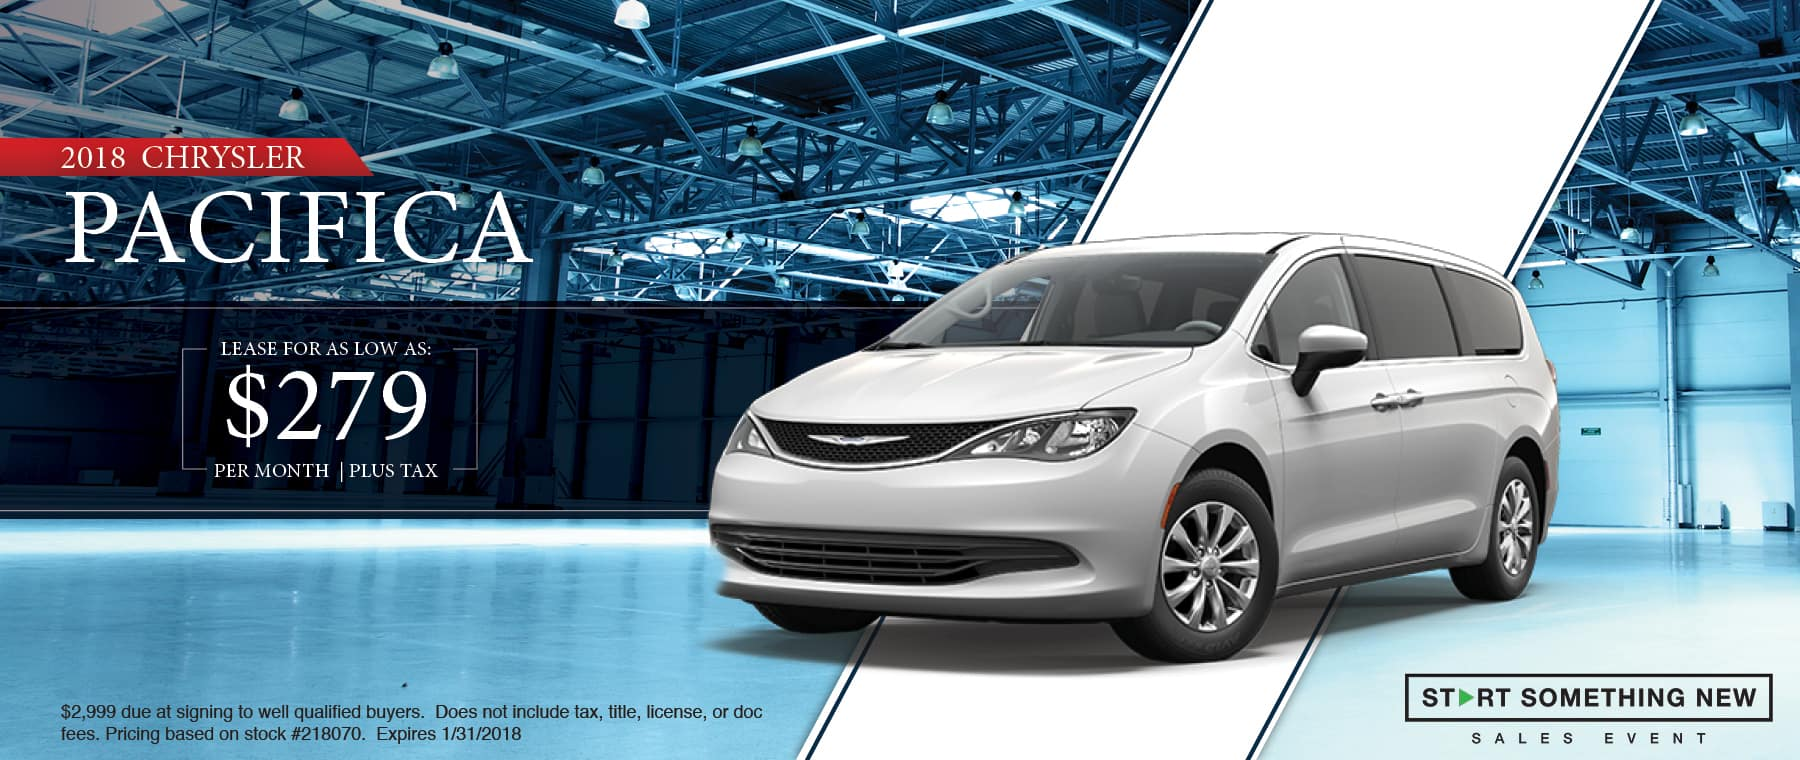 2018 Chrysler Pacifica Special in Thomson, GA